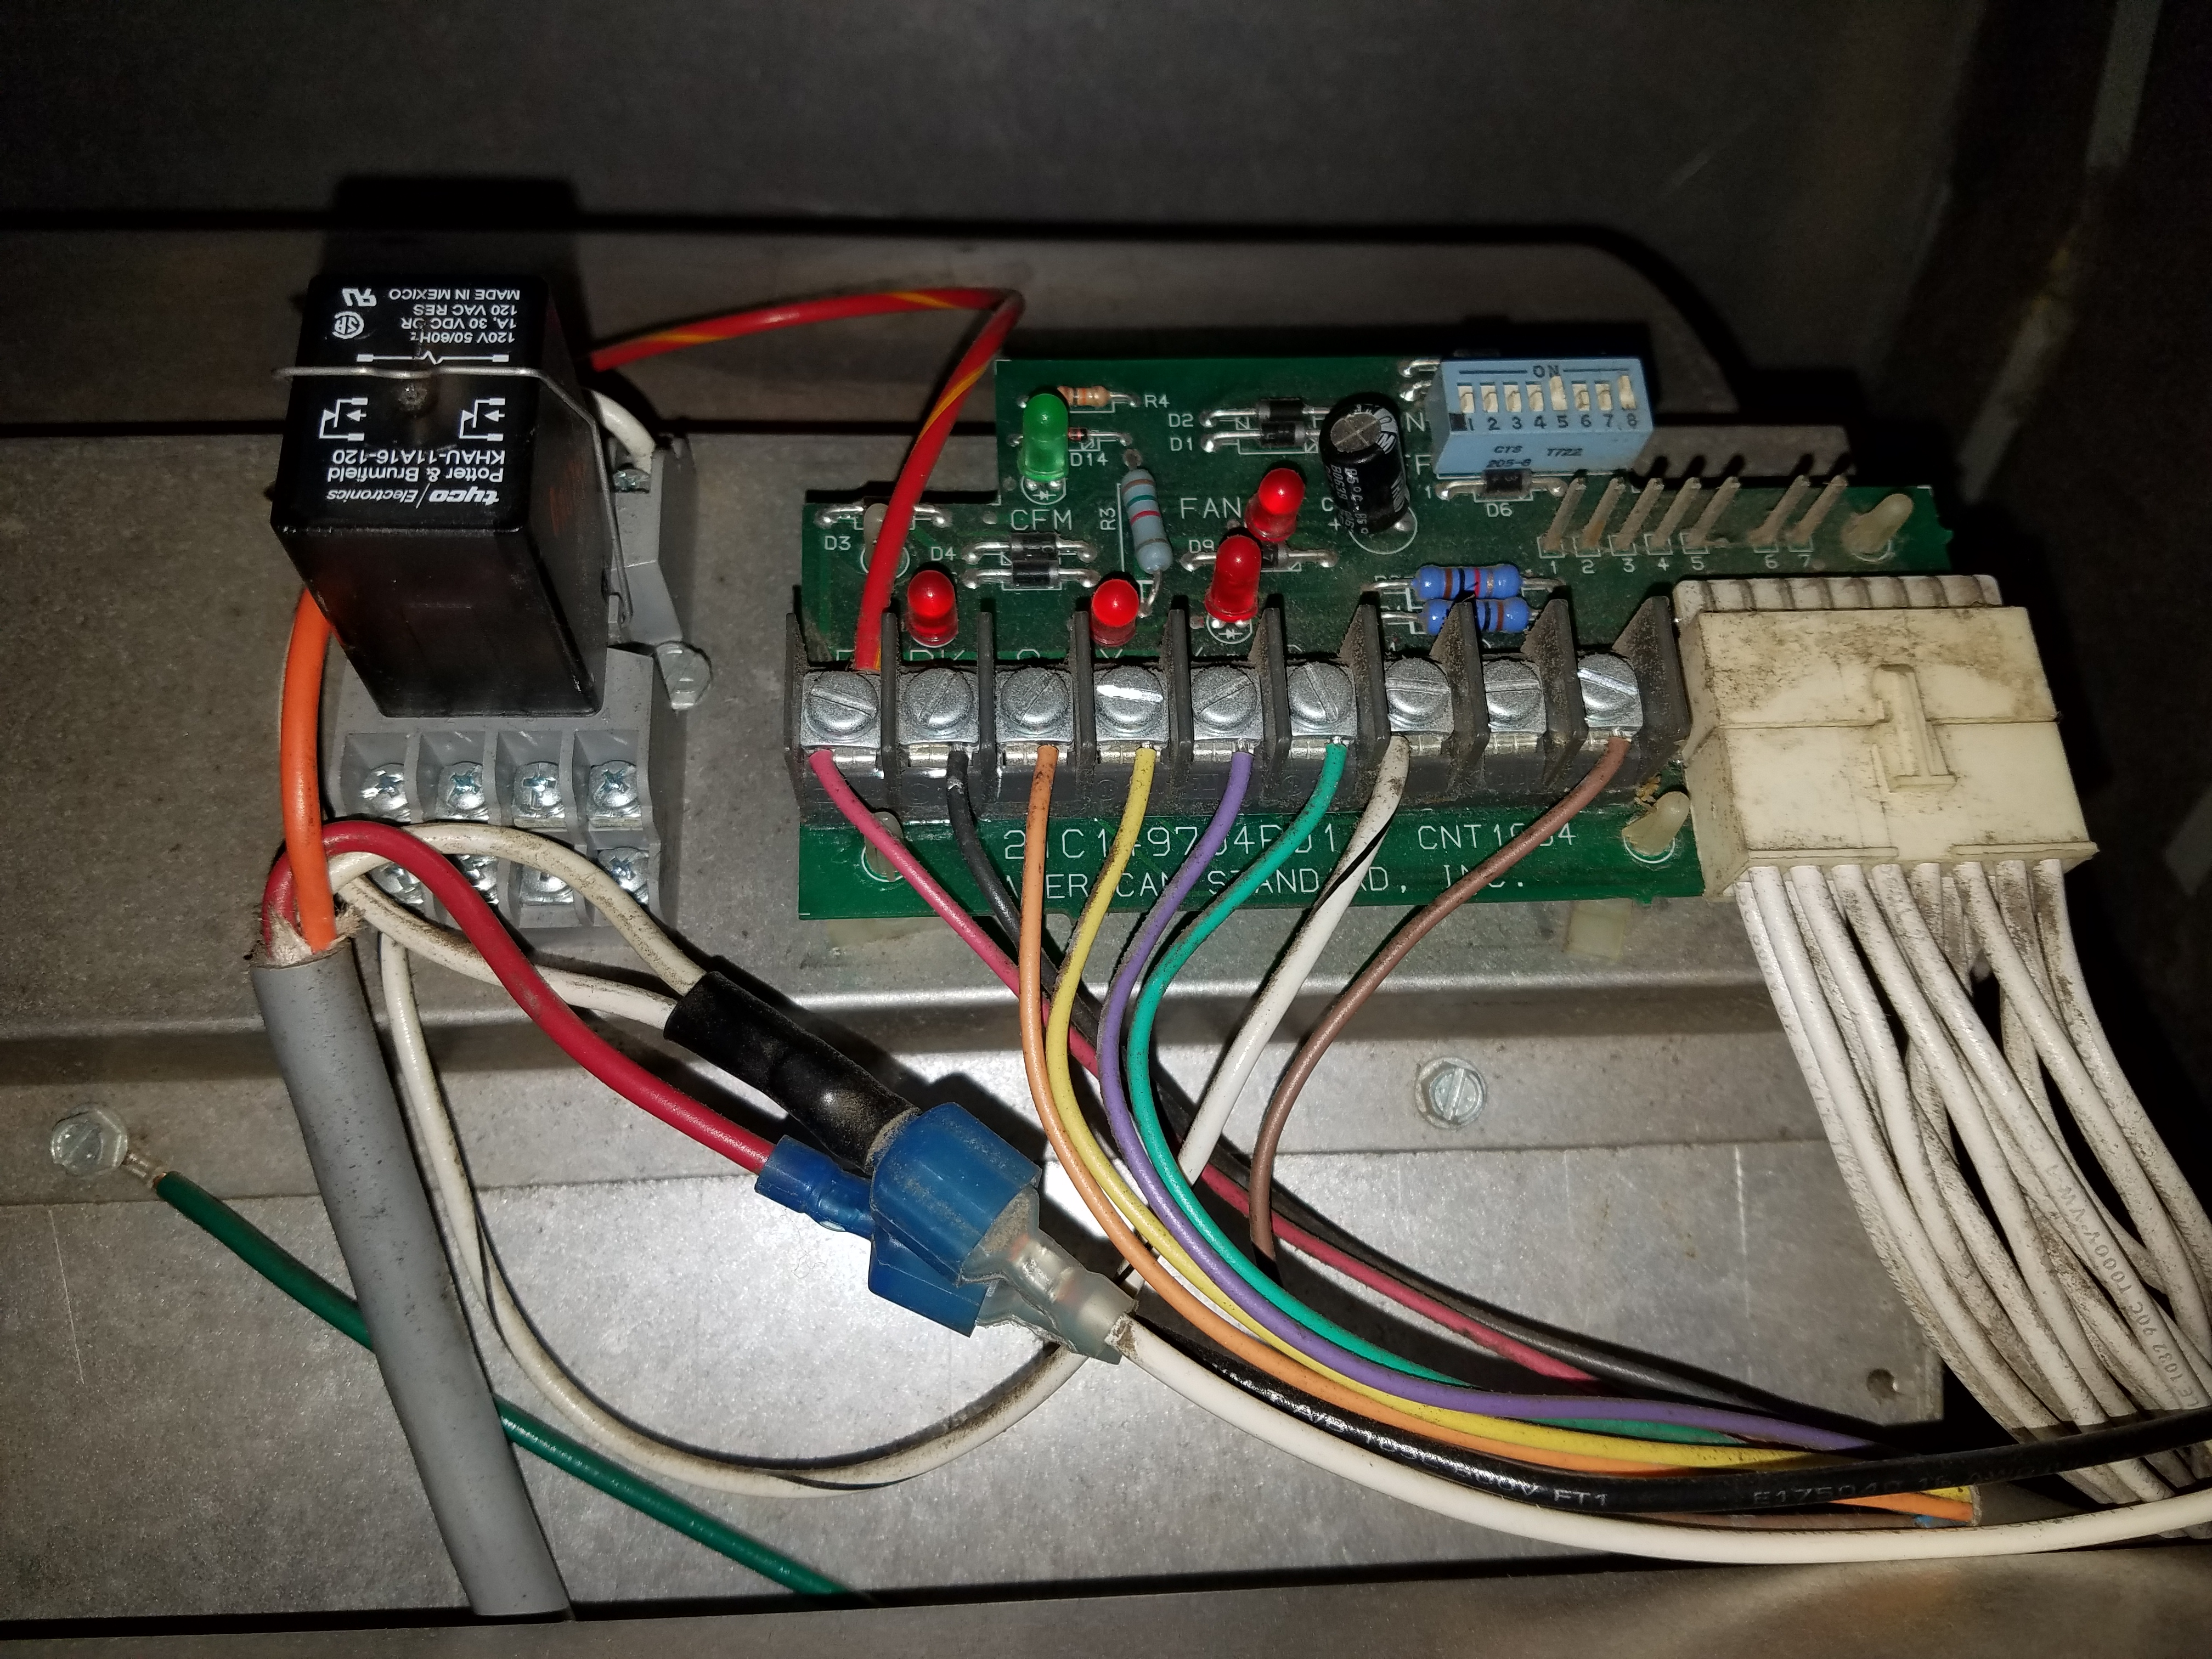 Have An Xv80 Trane Heater With No Power To The Thermostat Or Furnace. Wiring. Hunter 5 Wire Thermostat Diagram 40135 At Scoala.co